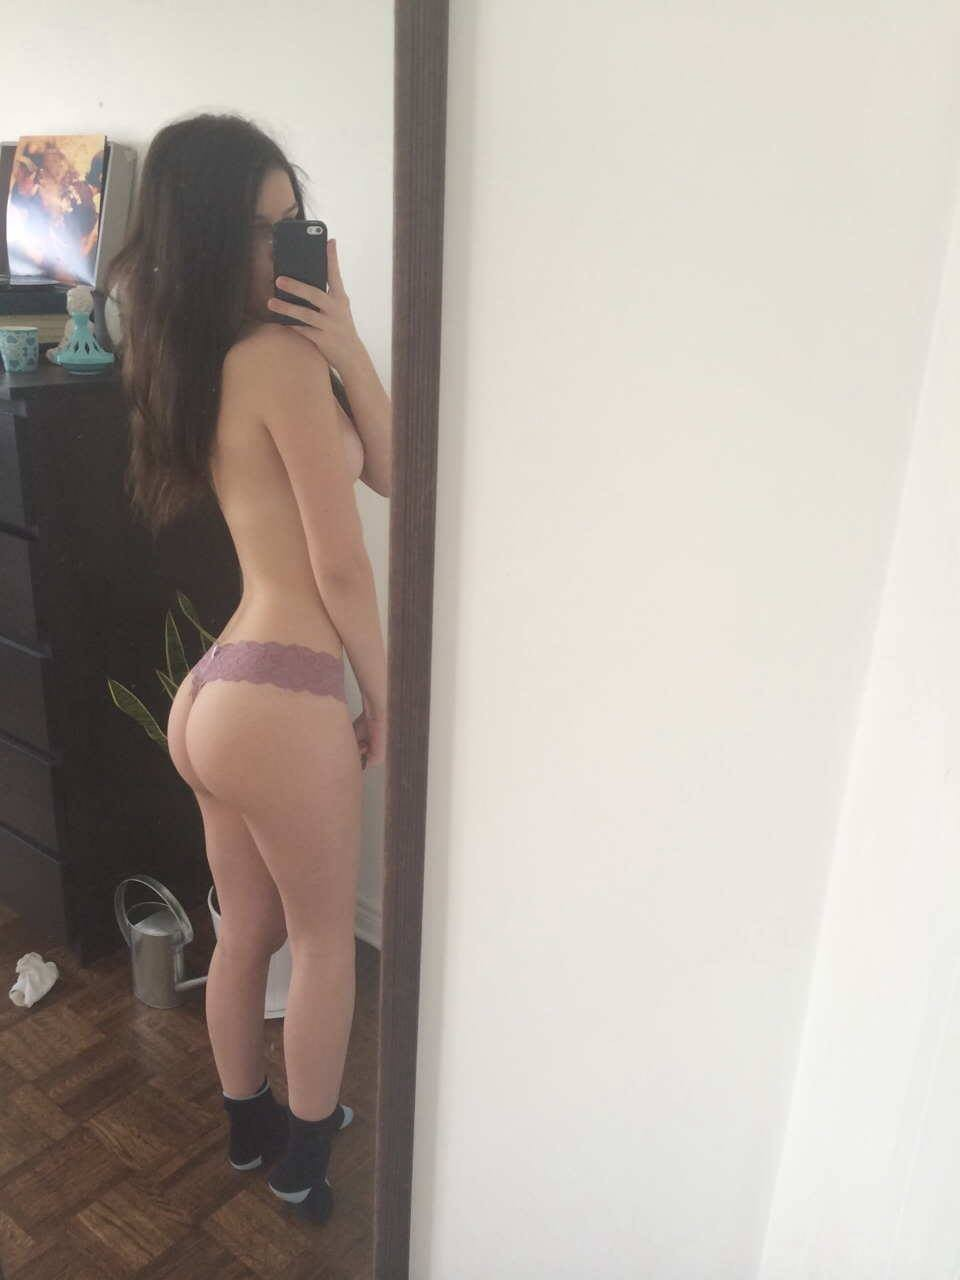 ❤️❤️꧂Cute Sexy Girl Looking💖💖Crazy Hukup Any Guy Ready For Fuck ꧁814-214-4959꧁